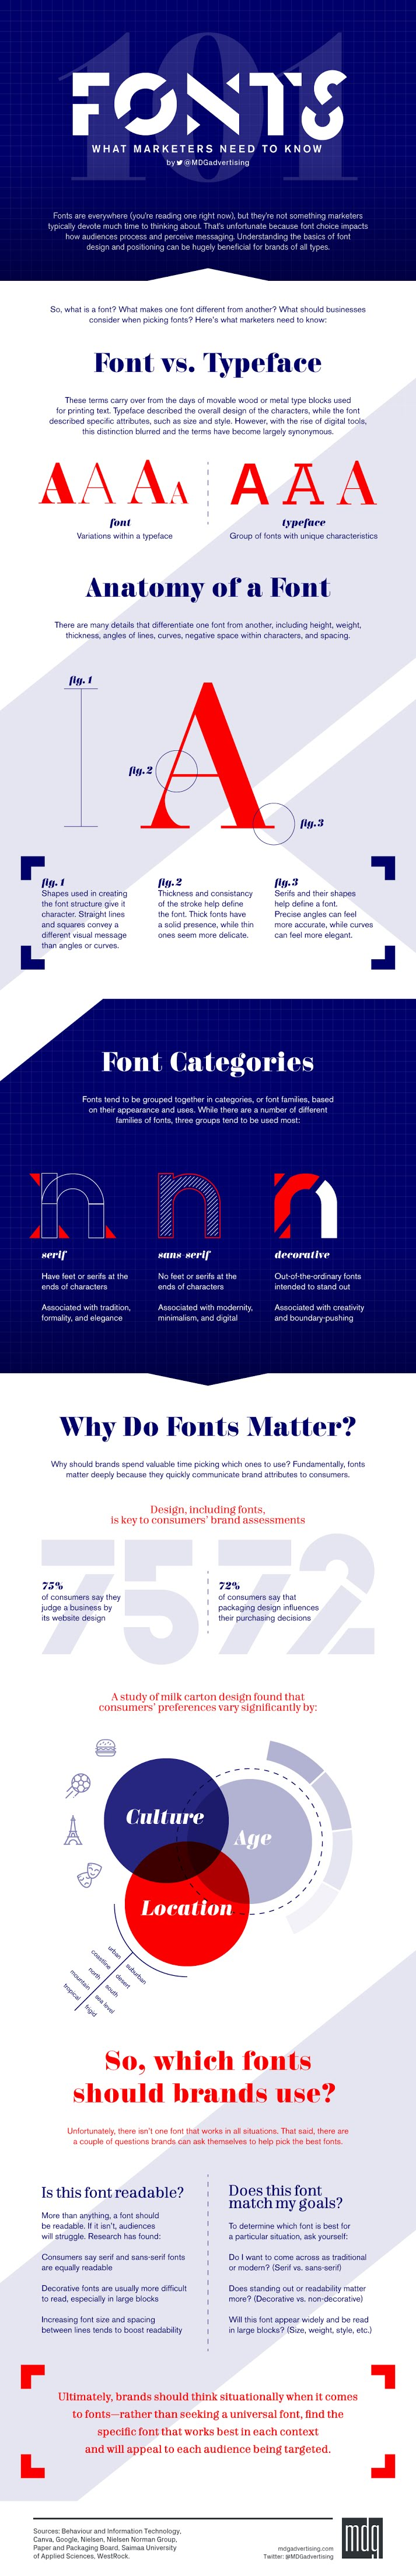 Fonts: What Marketers Need to Know #infographic